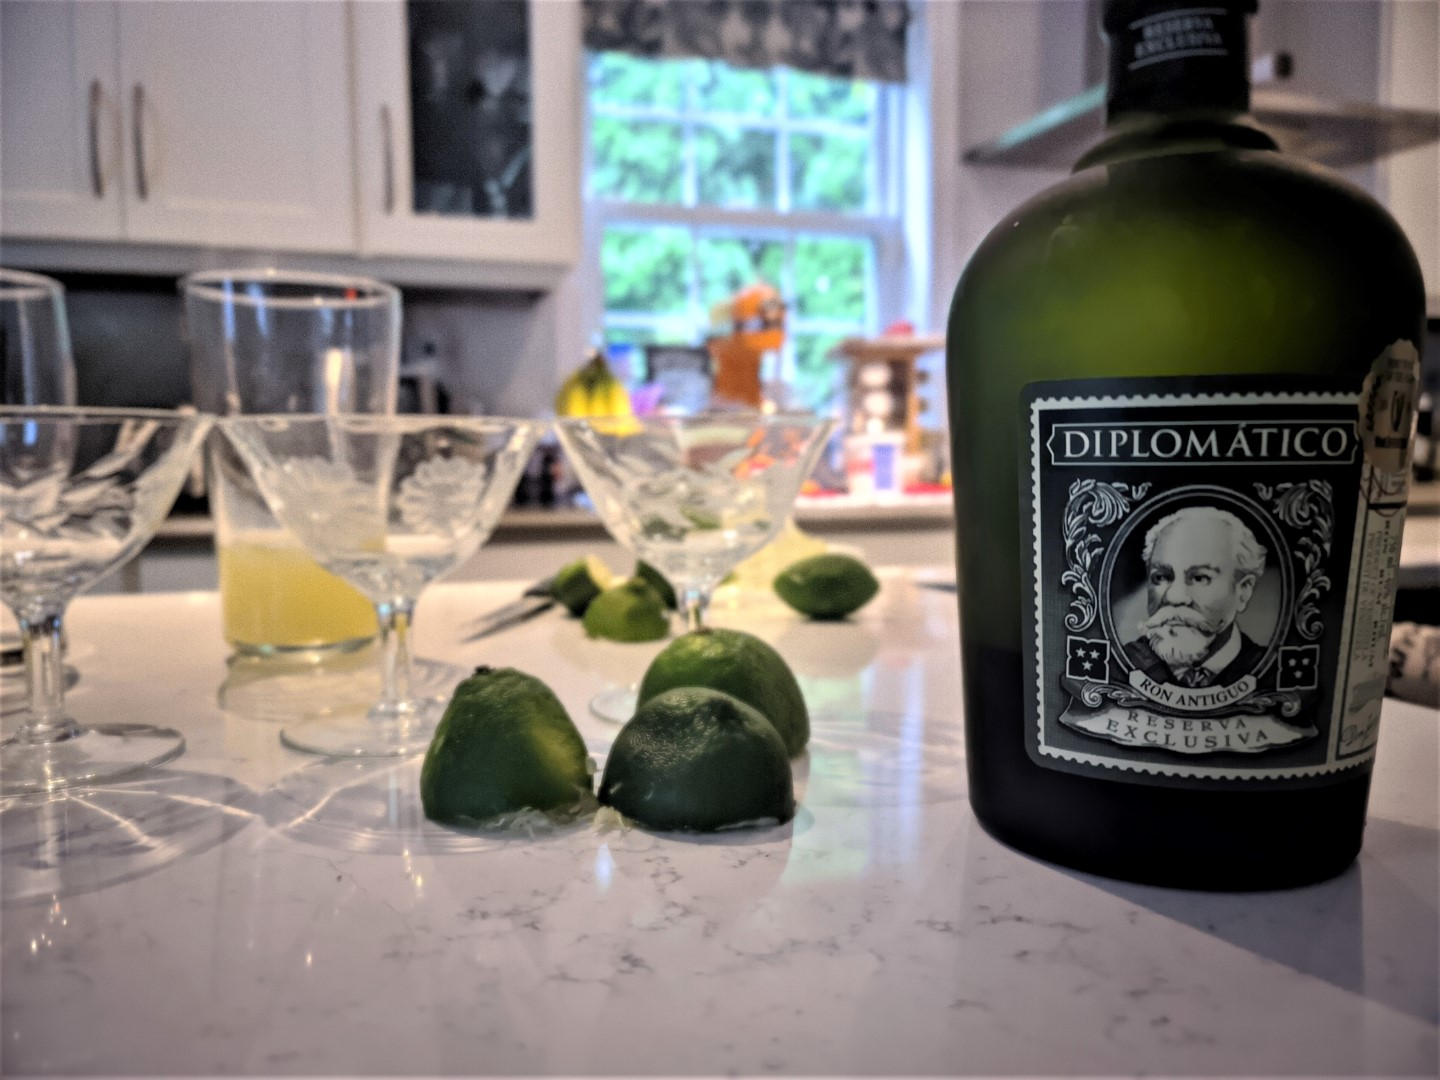 Diplomático Cocktail with lime